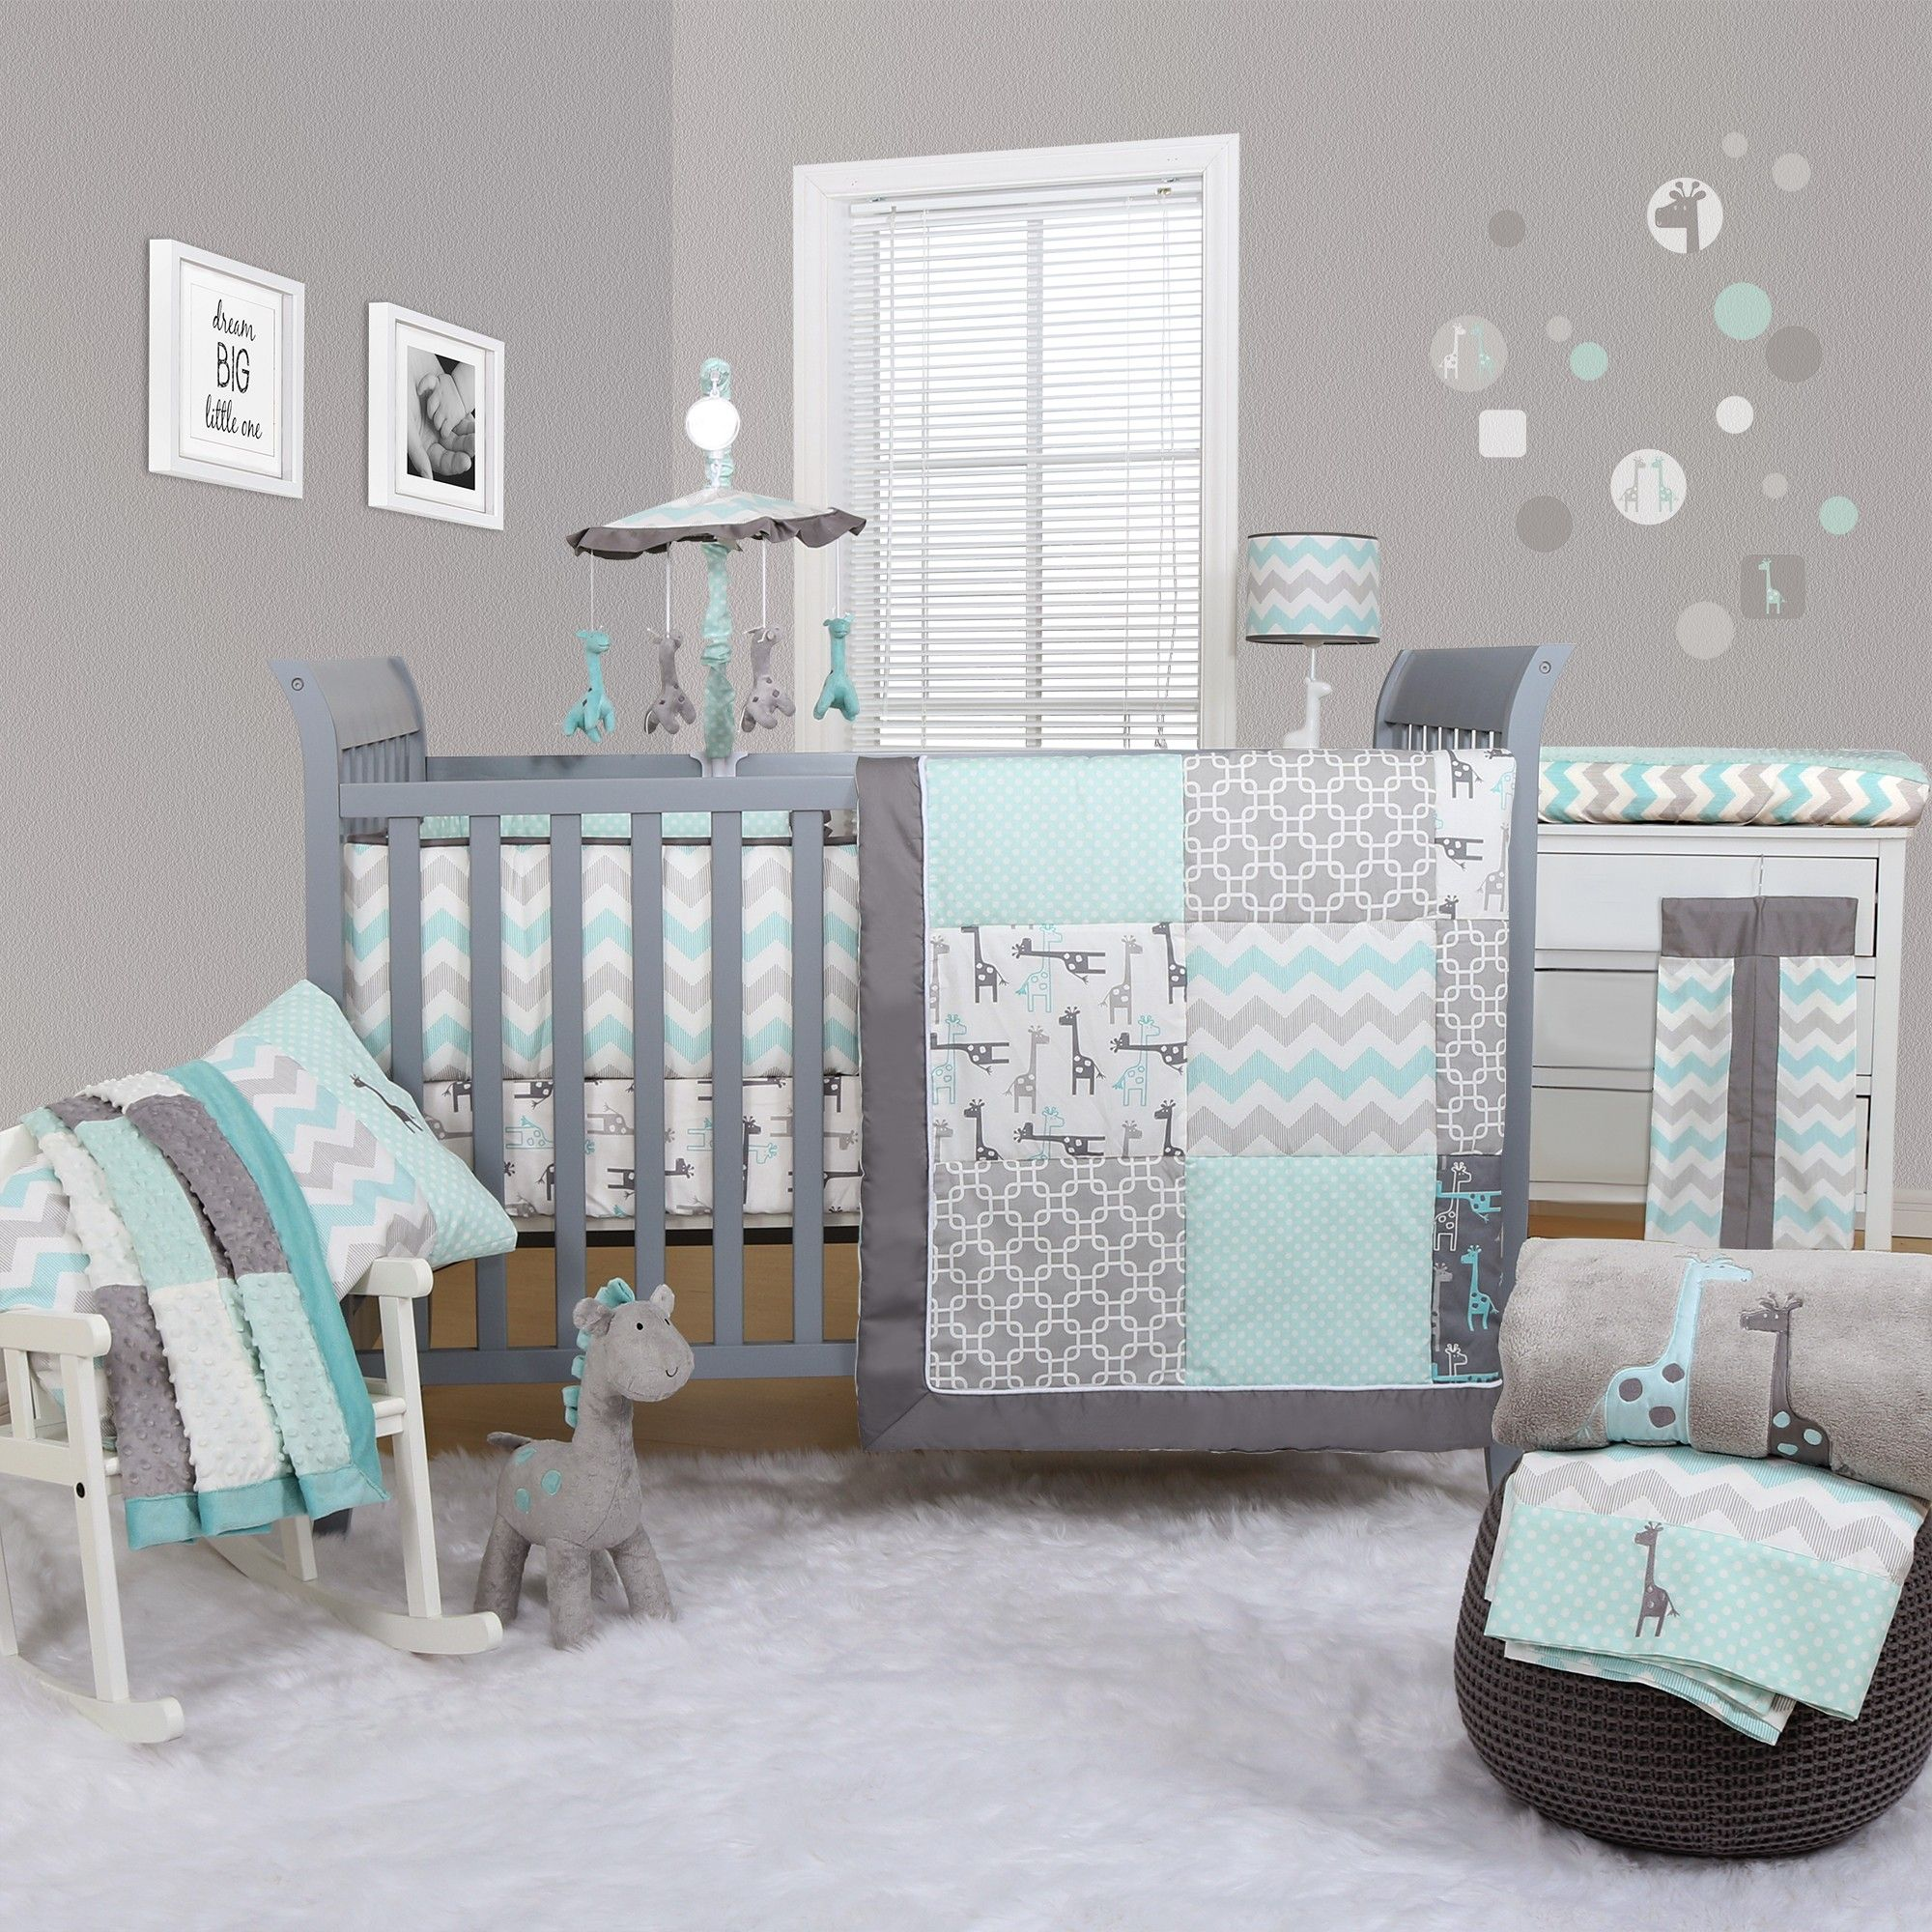 Baby Boy Nursery Themes: Peanut Shell Uptown Giraffe 5 Piece Bedding Set